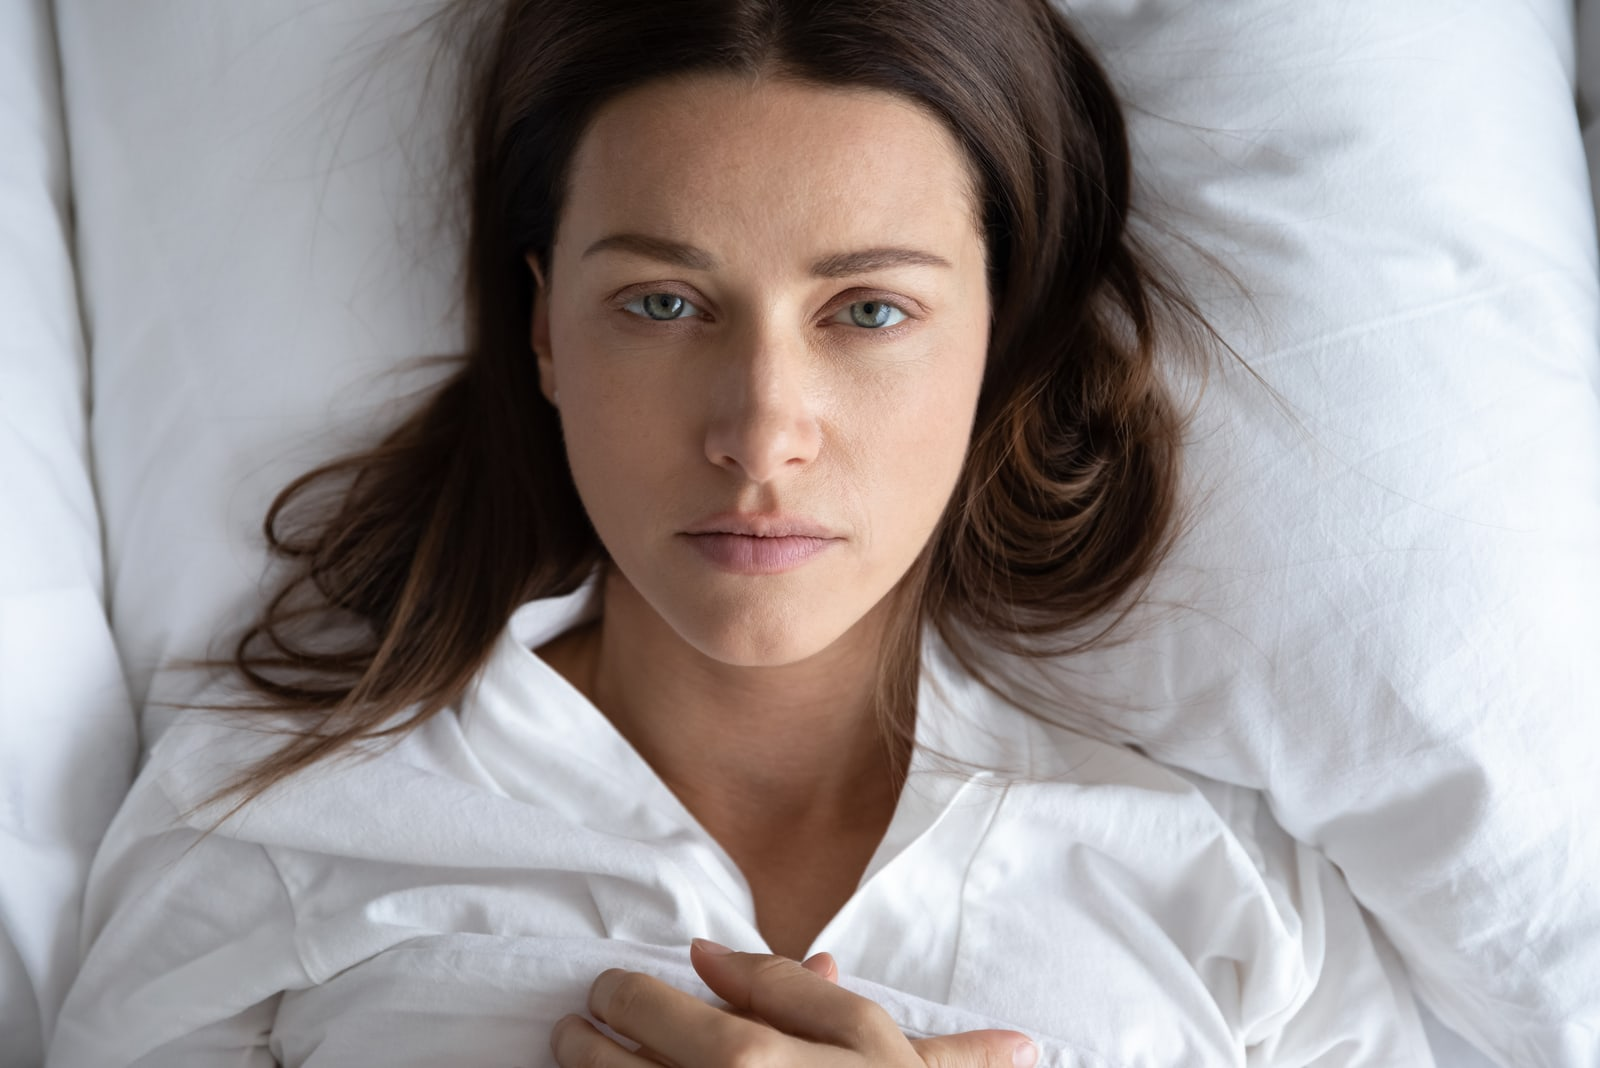 depressed upset young woman lying in bed